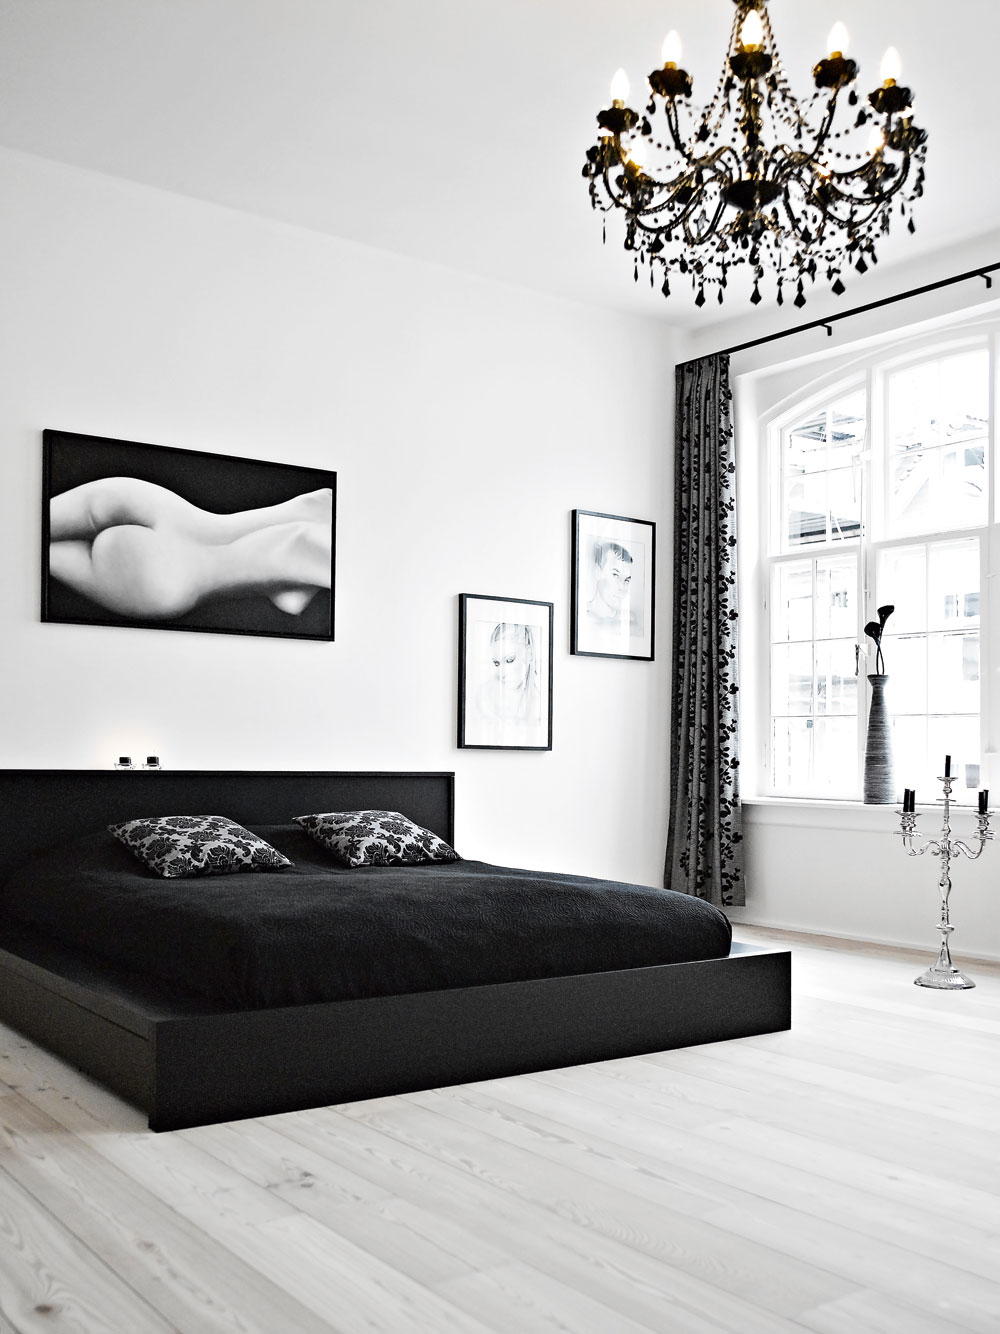 Bedroom paint designs black and white - Bedroom Paint Designs Black And White 25